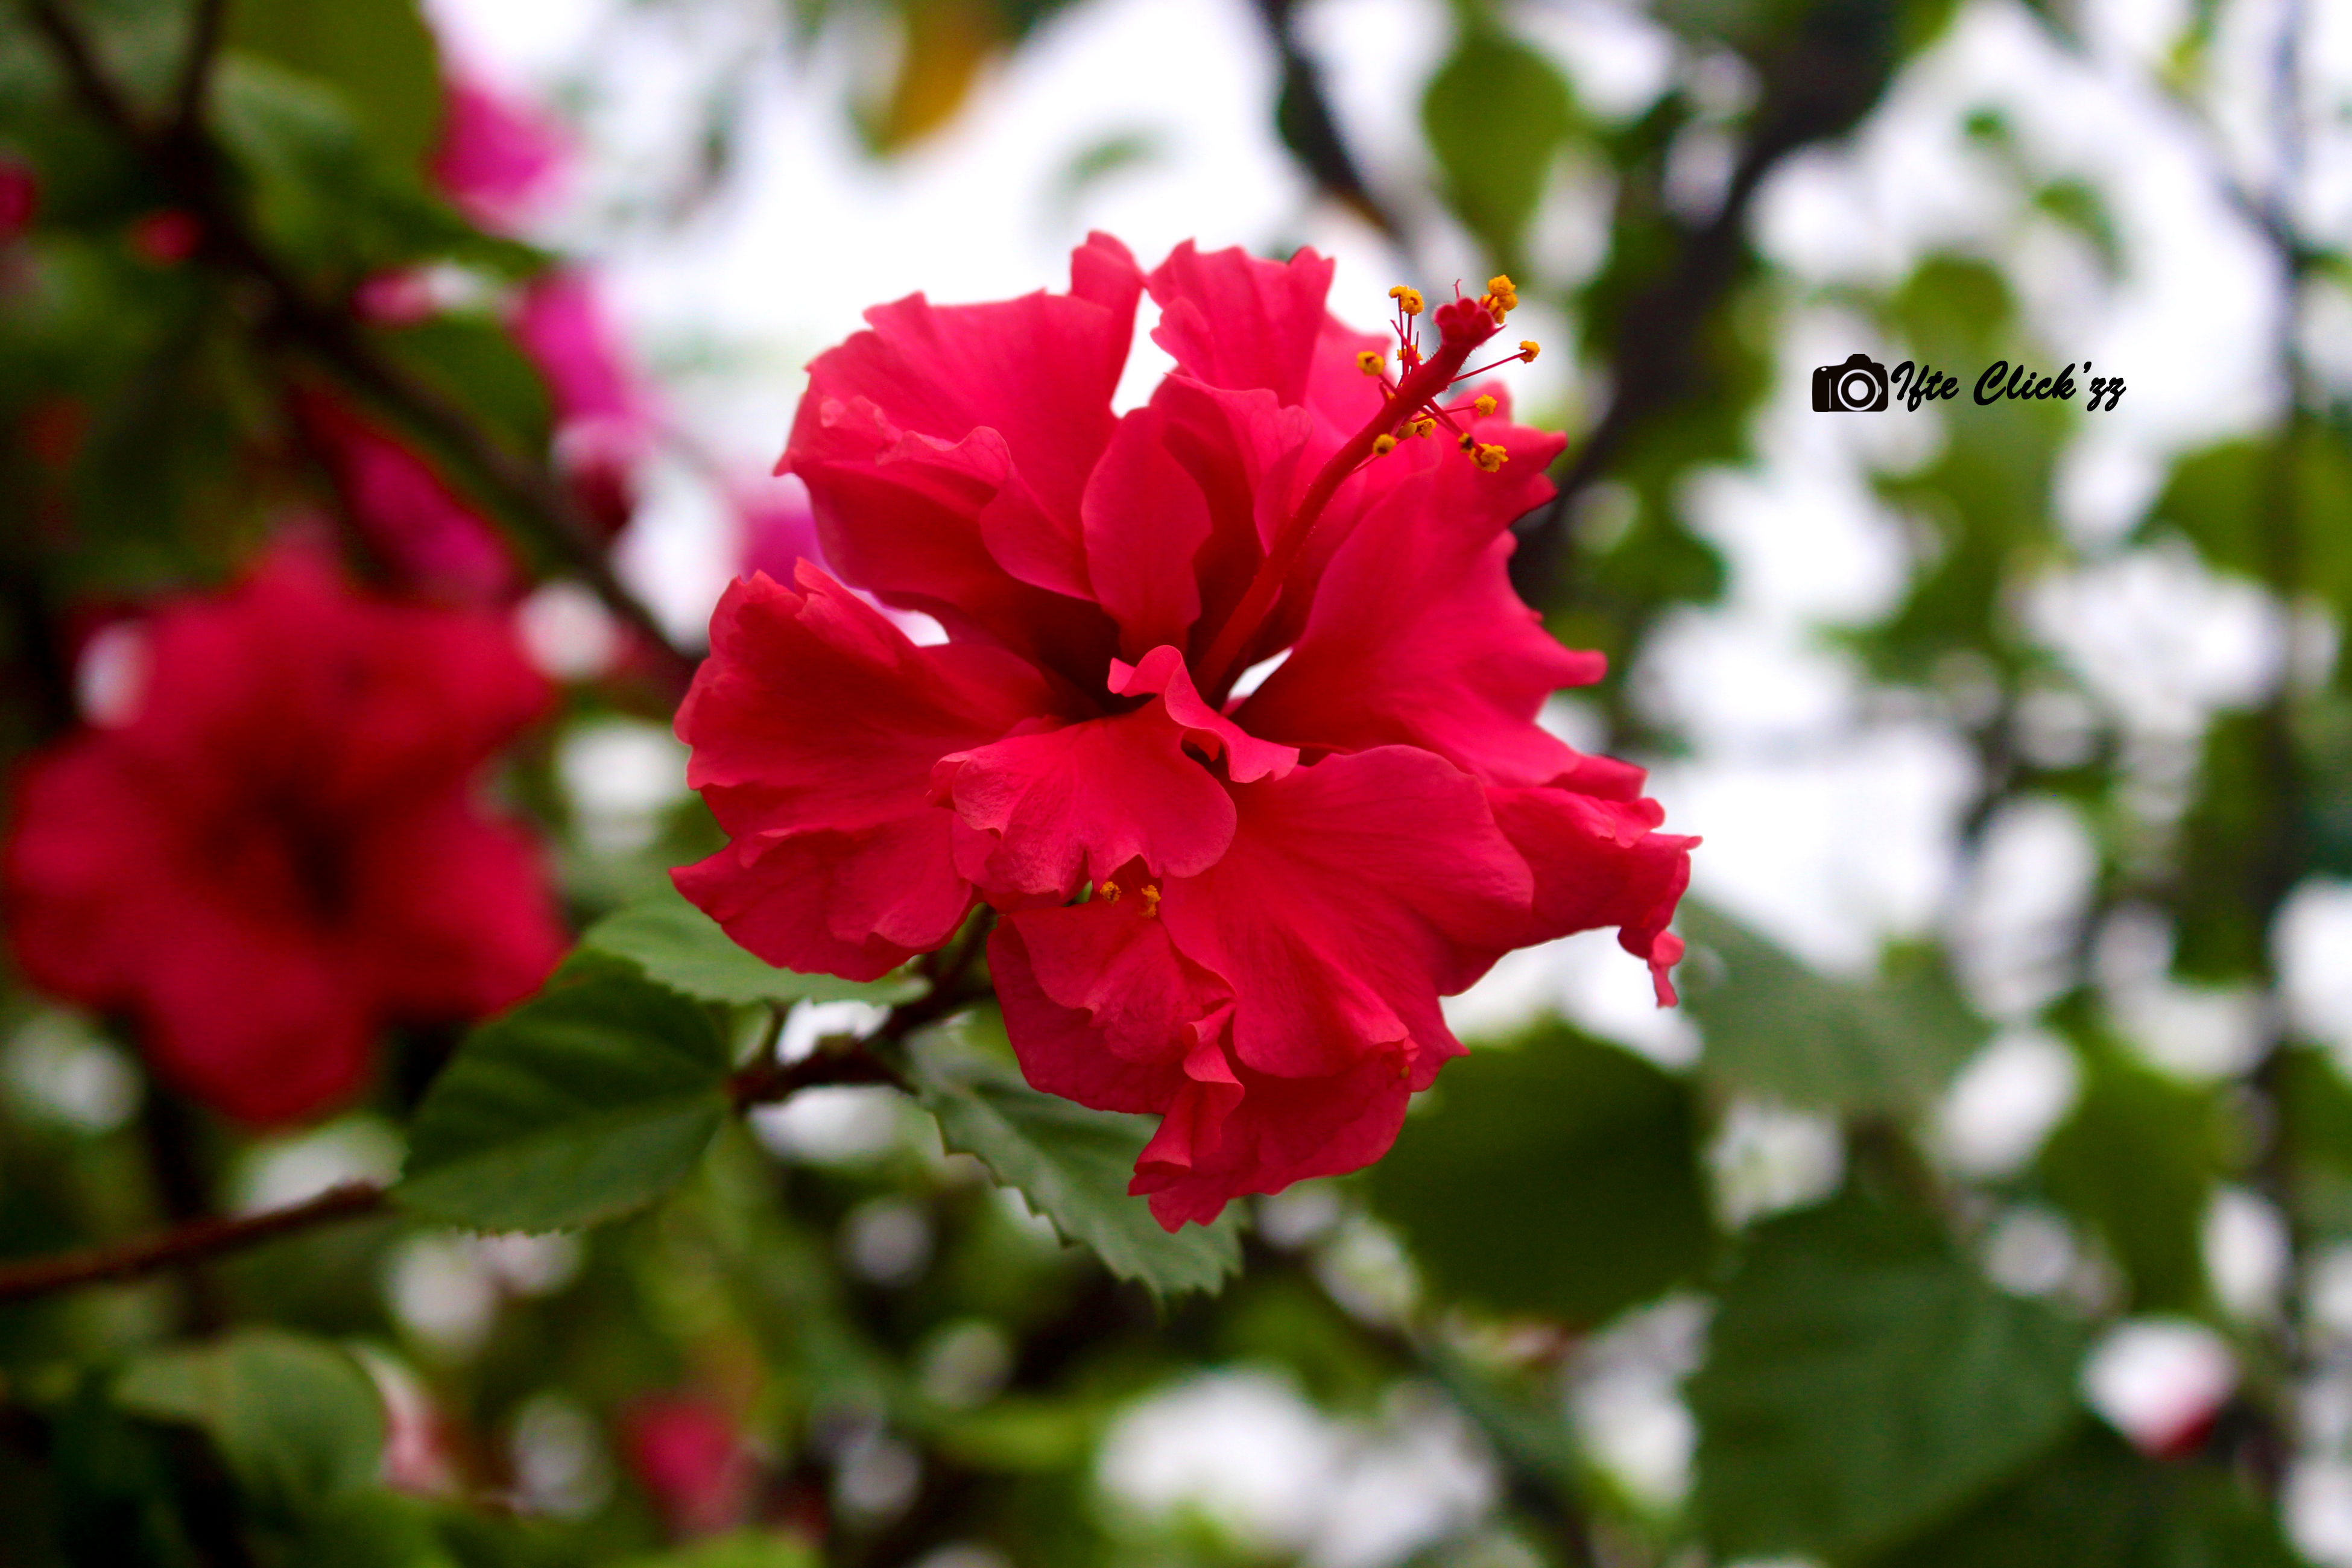 flower, freshness, focus on foreground, petal, fragility, growth, close-up, beauty in nature, flower head, blooming, red, nature, pink color, day, outdoors, tree, park - man made space, in bloom, selective focus, plant